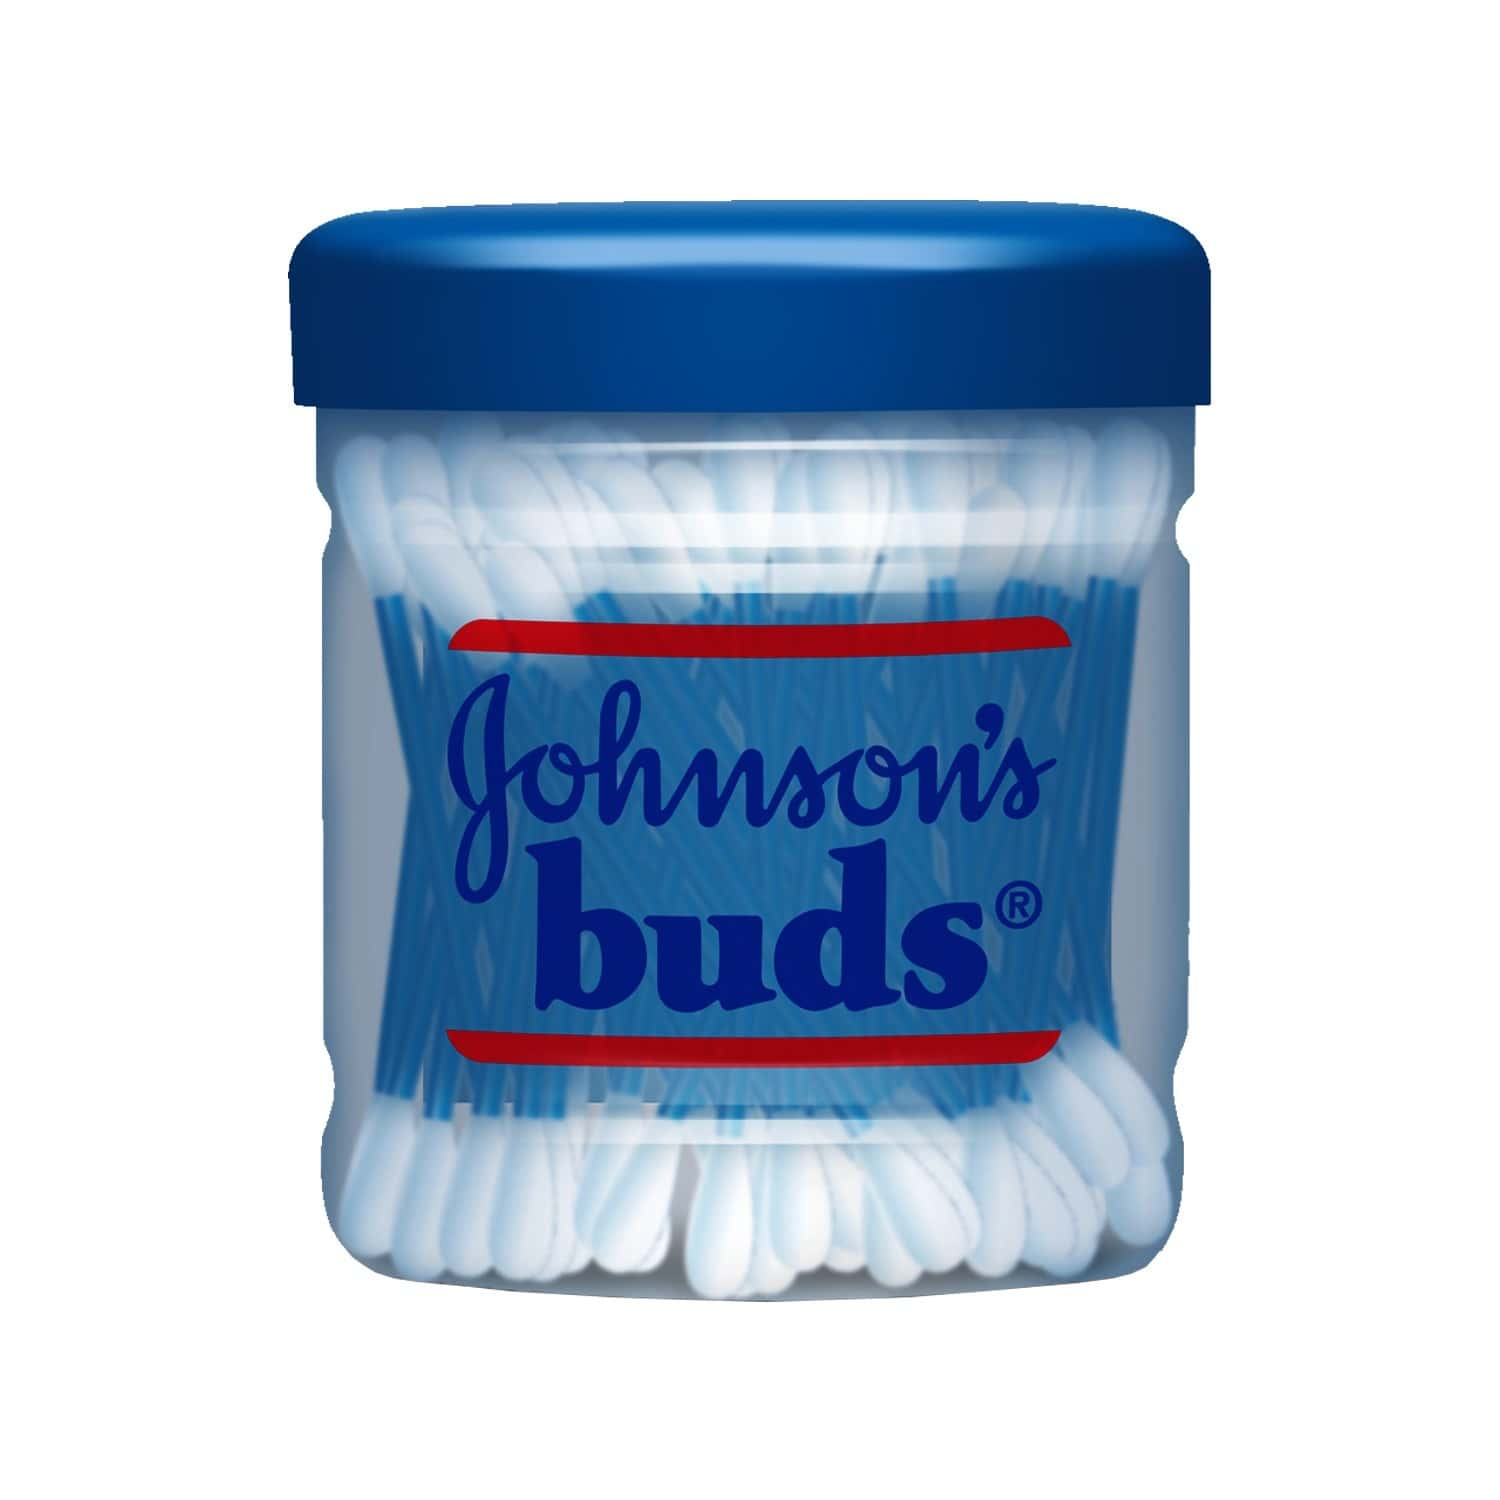 Johnson's Baby Cotton Buds - 150's